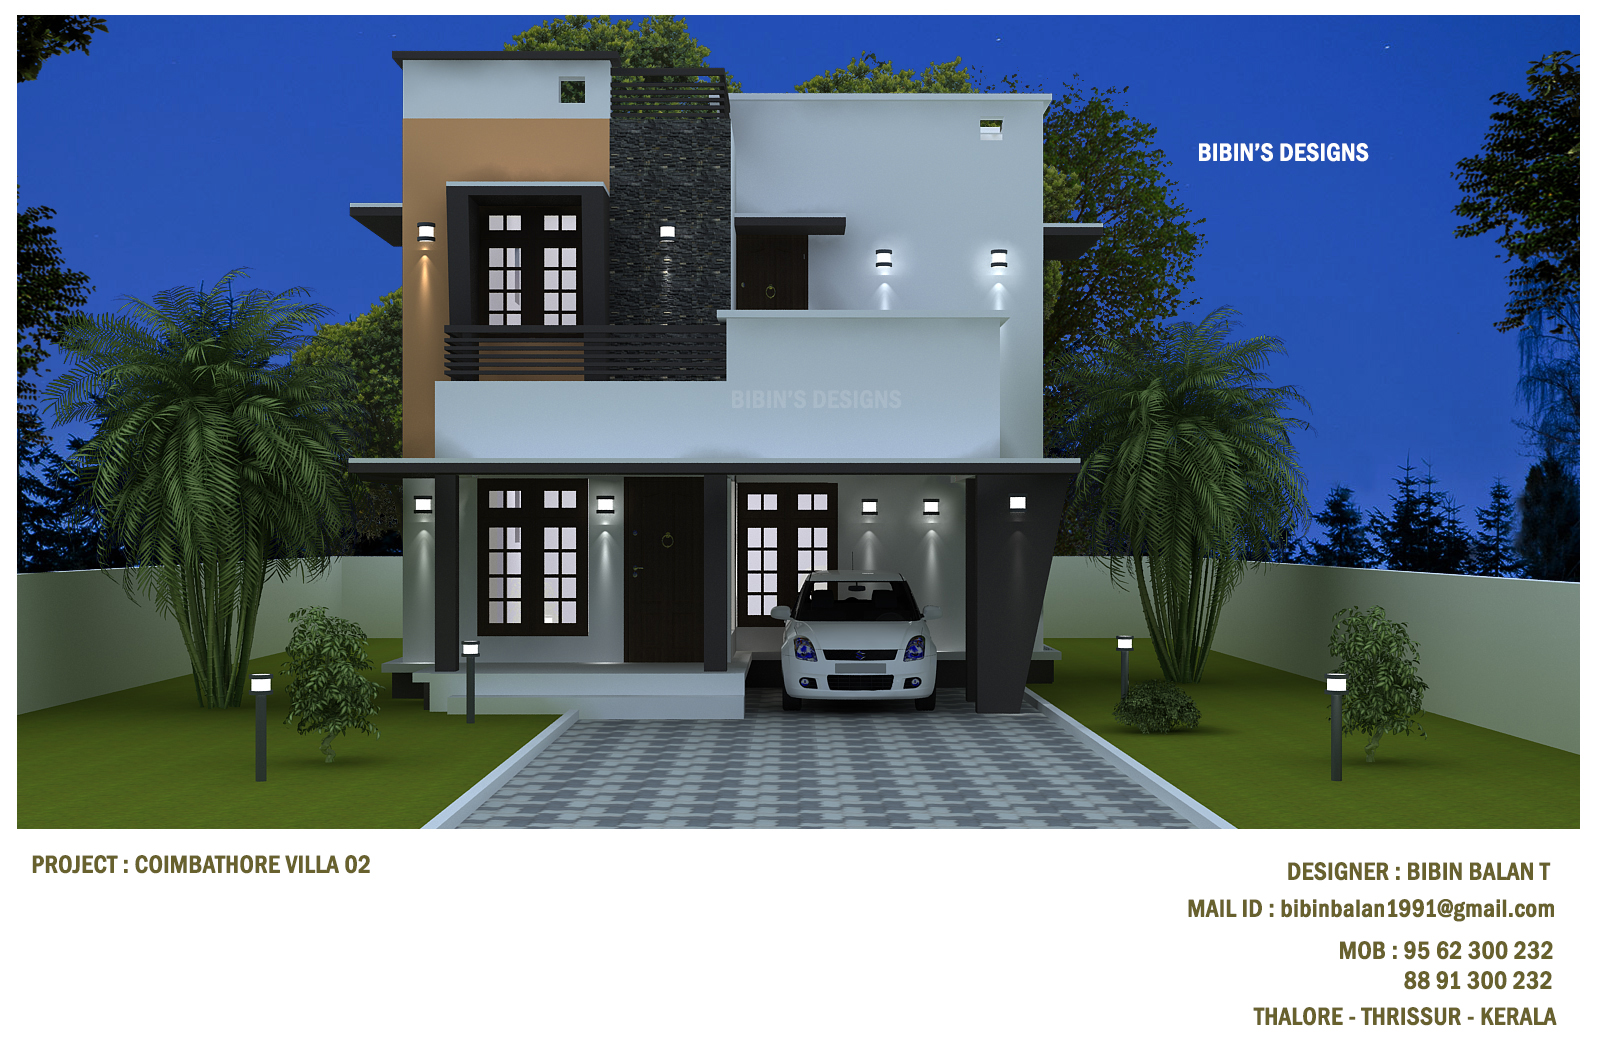 1378 square feet double floor modern home design below 20 lacs